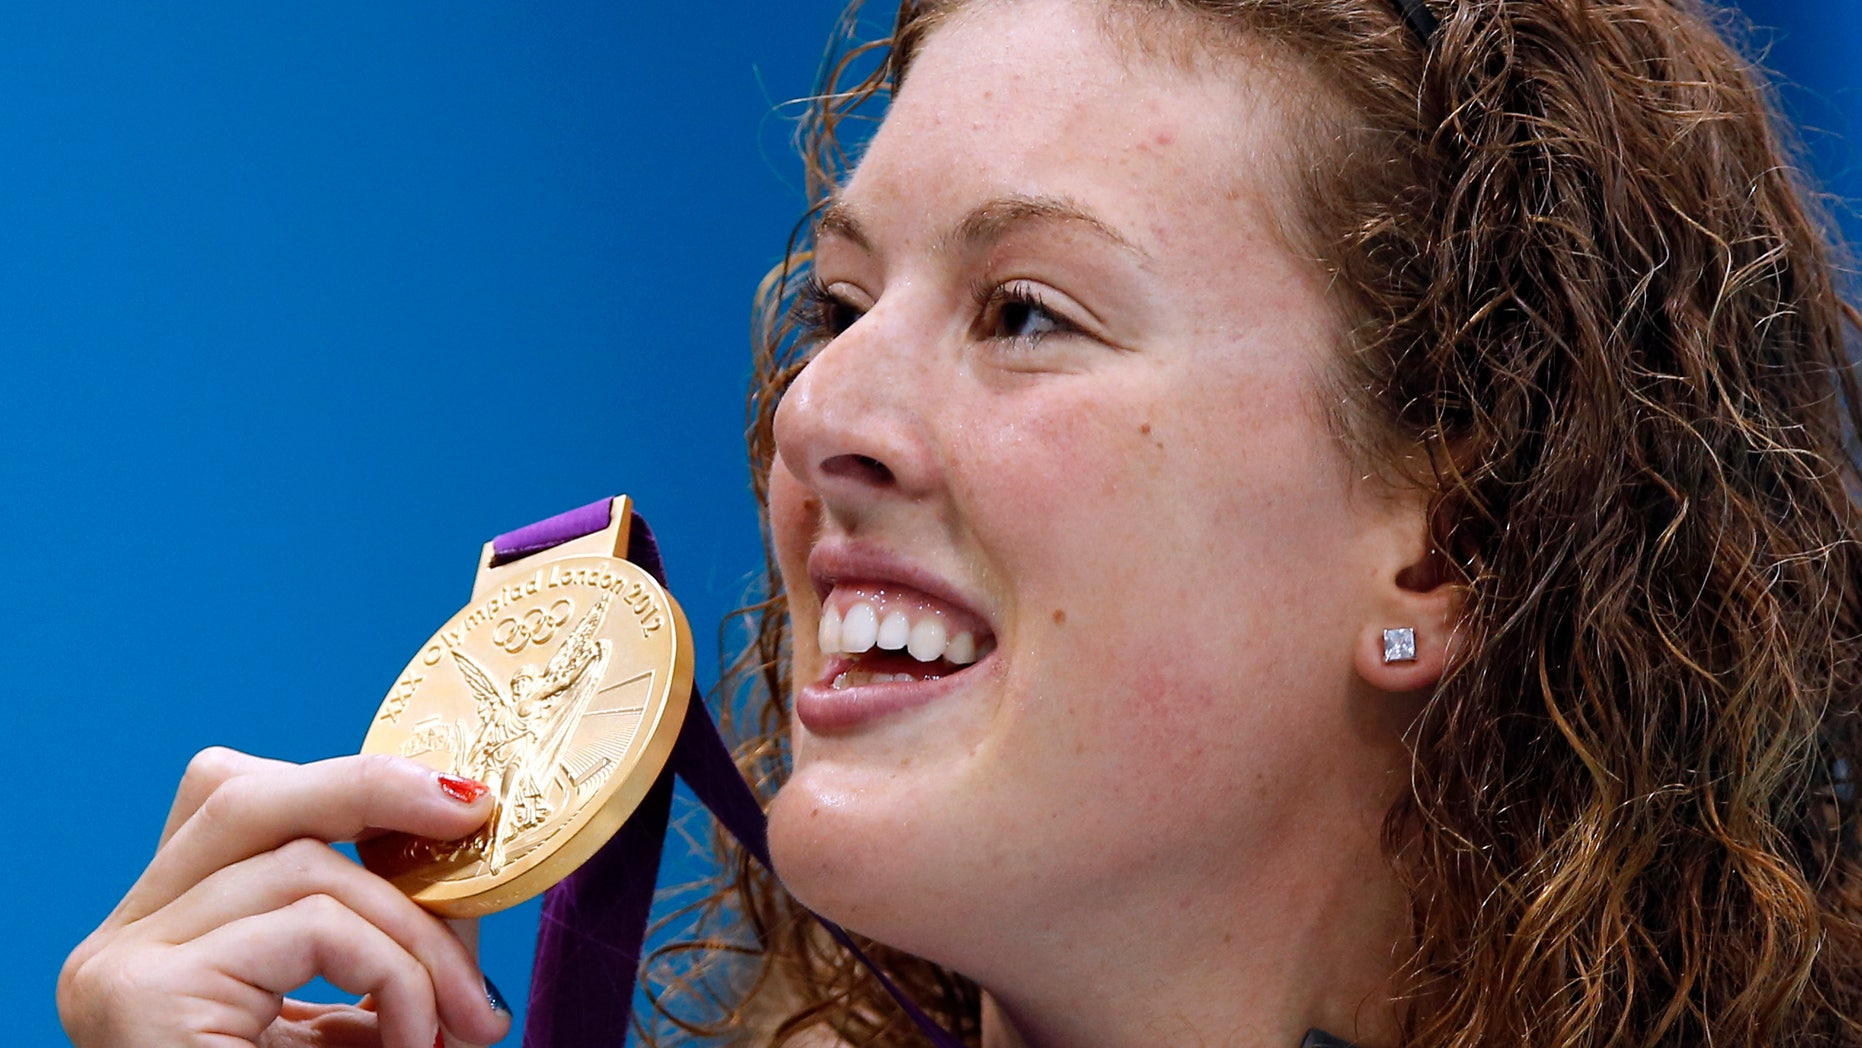 July 31, 2012: In this file photo, United States' Allison Schmitt holds her gold medal aloft after winning the women's 200-meter freestyle swimming final at the Aquatics Centre in the Olympic Park during the 2012 Summer Olympics in London.